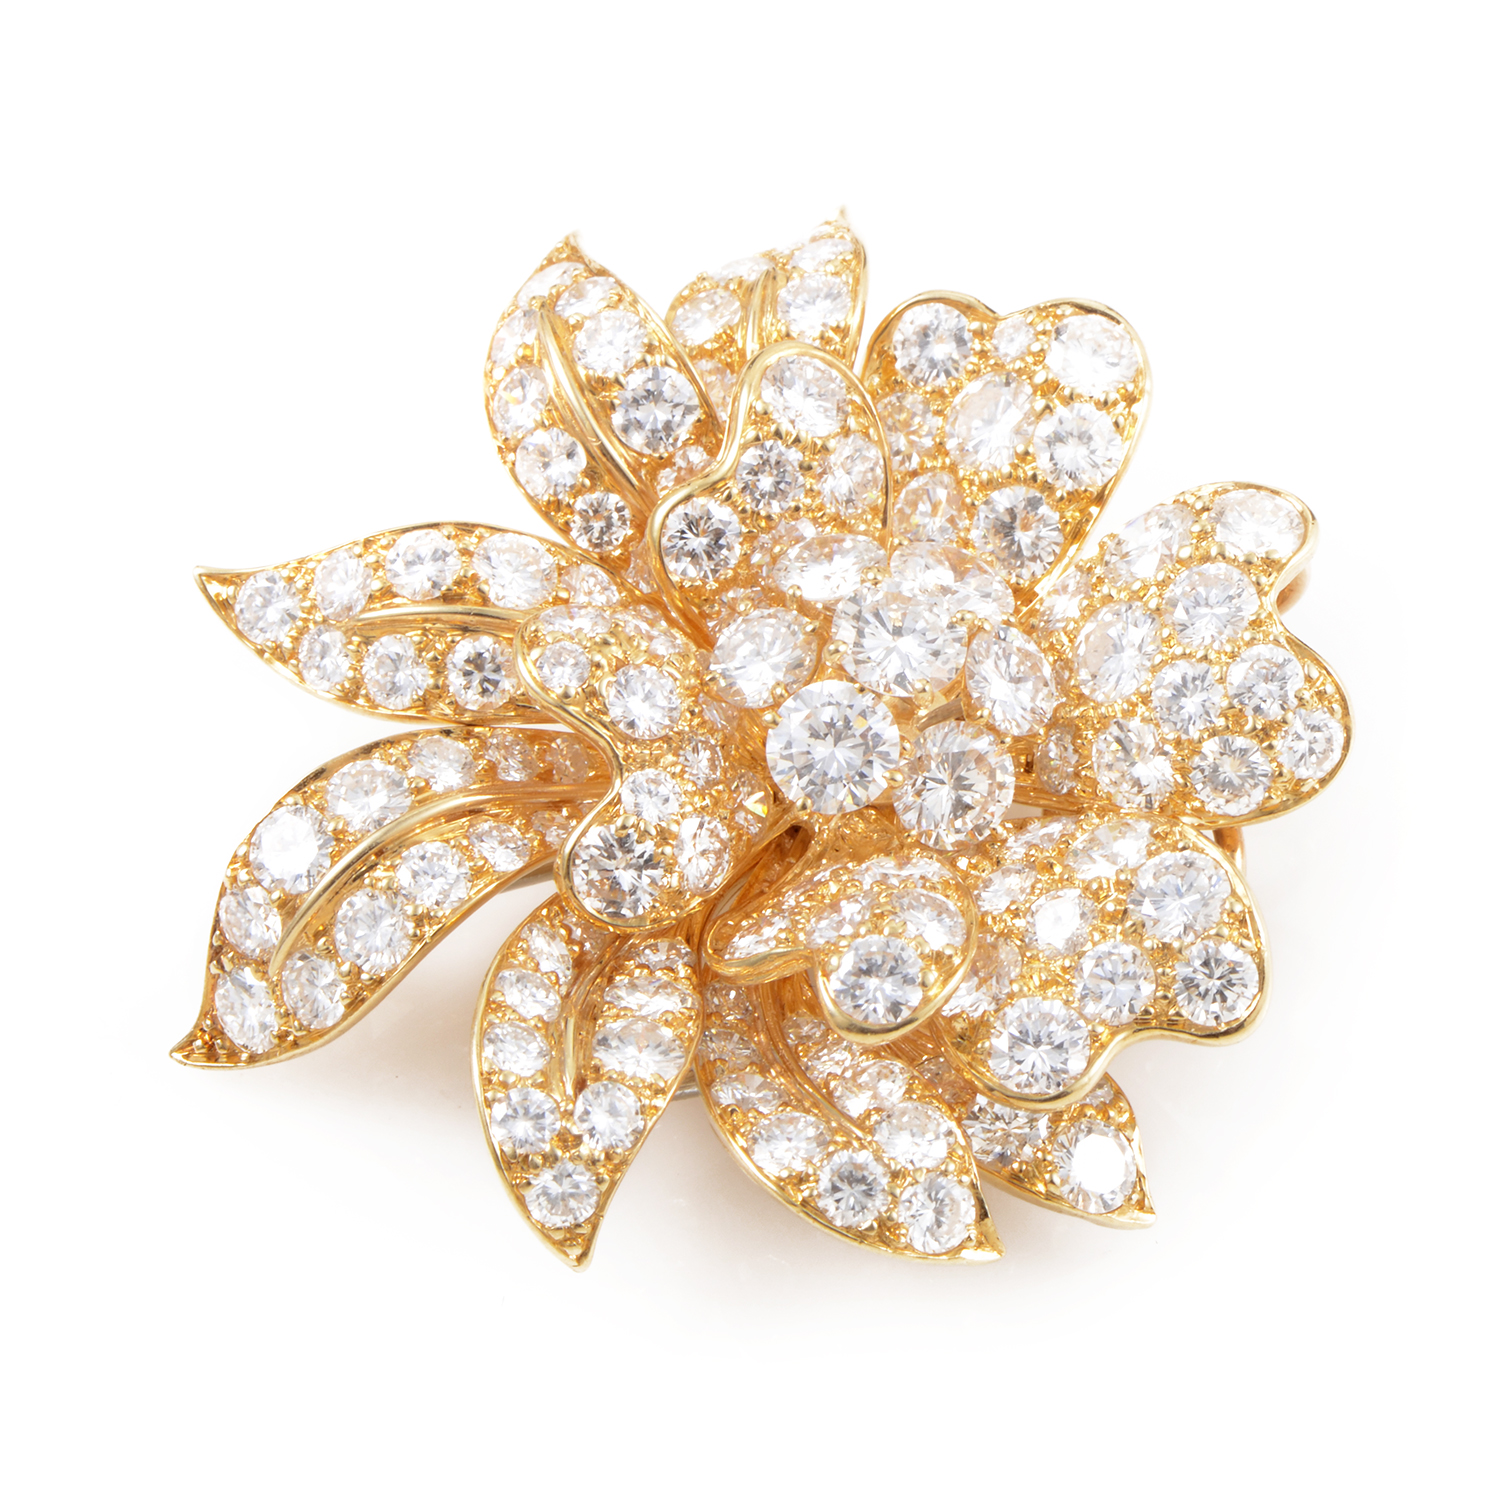 Van Cleef & Arpels Women's 18K Yellow Gold Diamond Flower Brooch